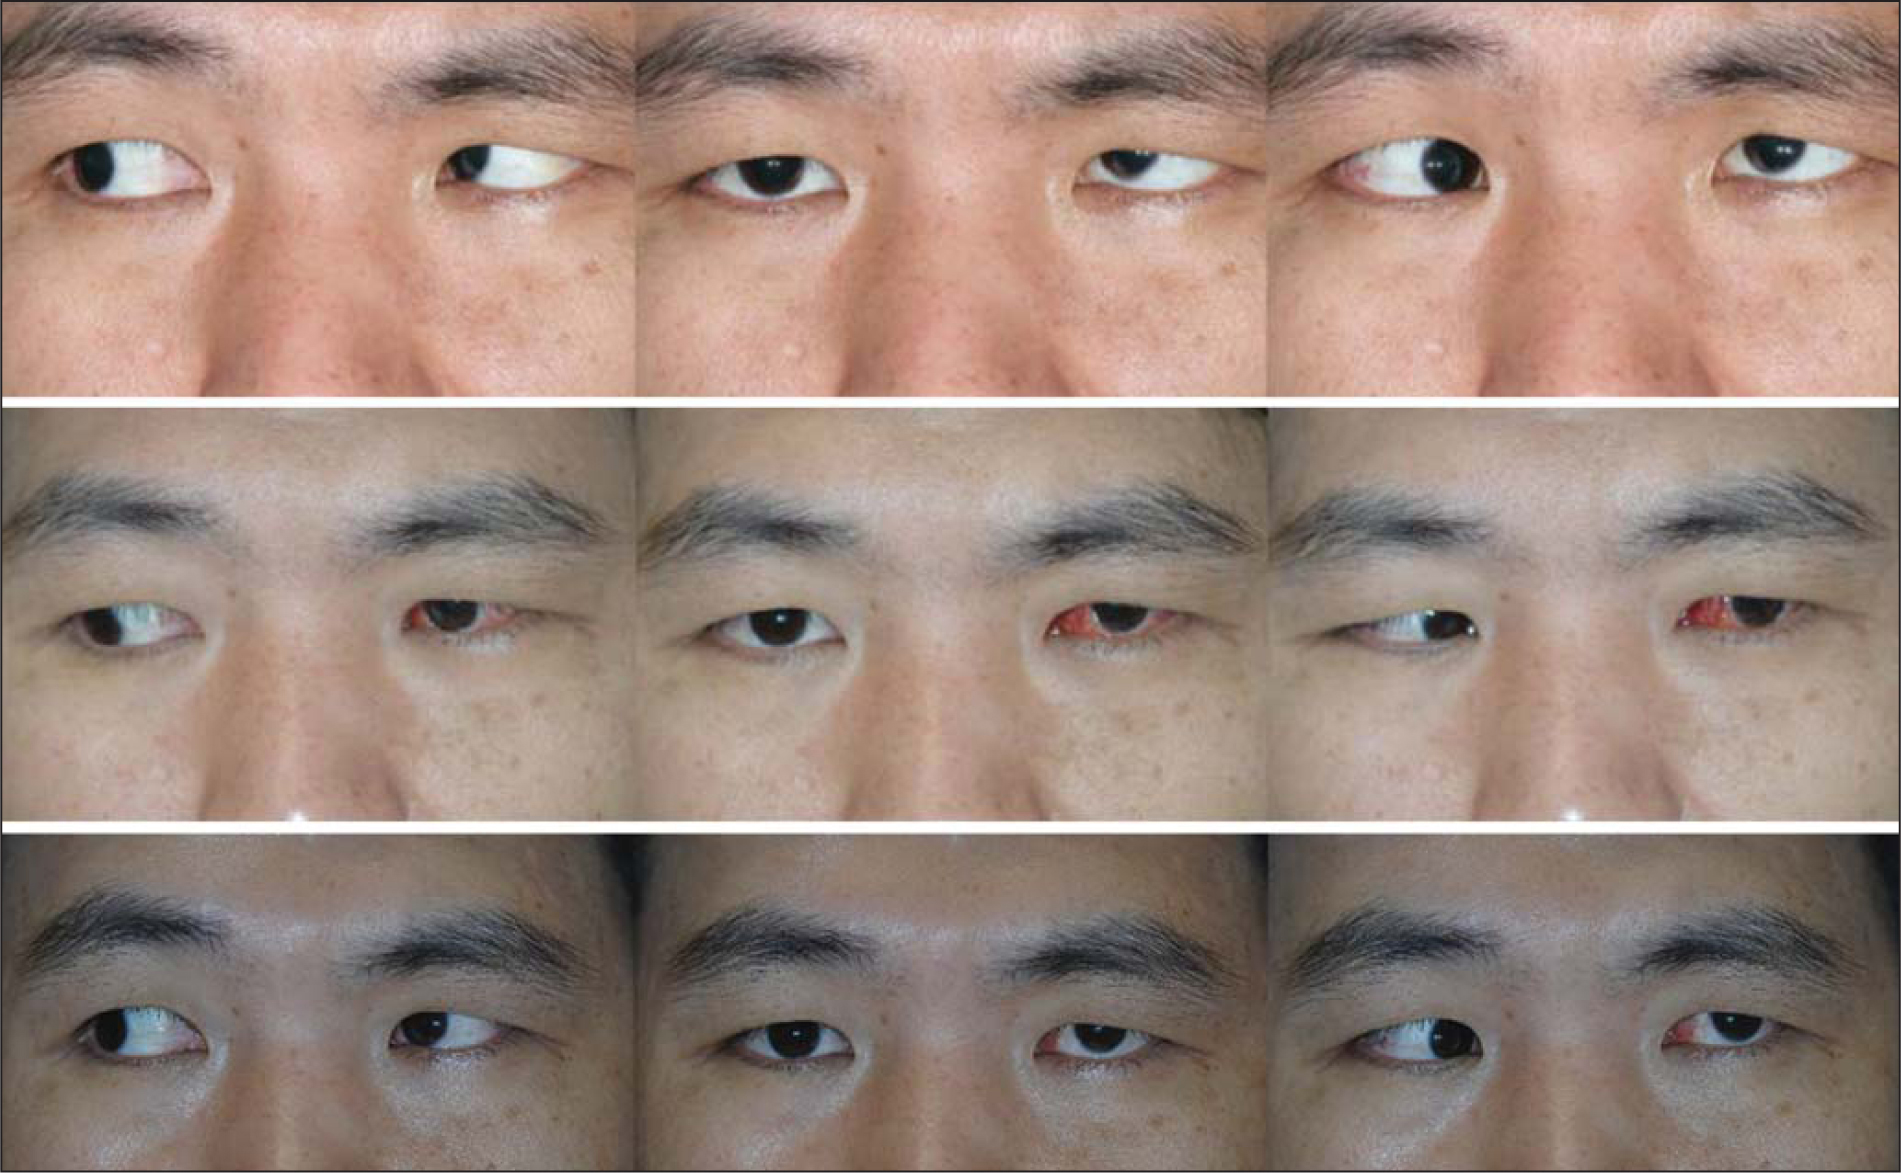 A 36-year-old man with left abducens palsy (case 3). (Top) The patient preoperatively showed a 60 prism diopter (PD) esotropia and a 10 PD left hypertropia with severely limited abduction. (Middle) One day postoperatively, the patient showed a 2 PD exotropia and a 6 PD left hypertropia with much improved abduction. (Bottom) Two months postoperatively, the patient showed a 10 PD left hypertropia.